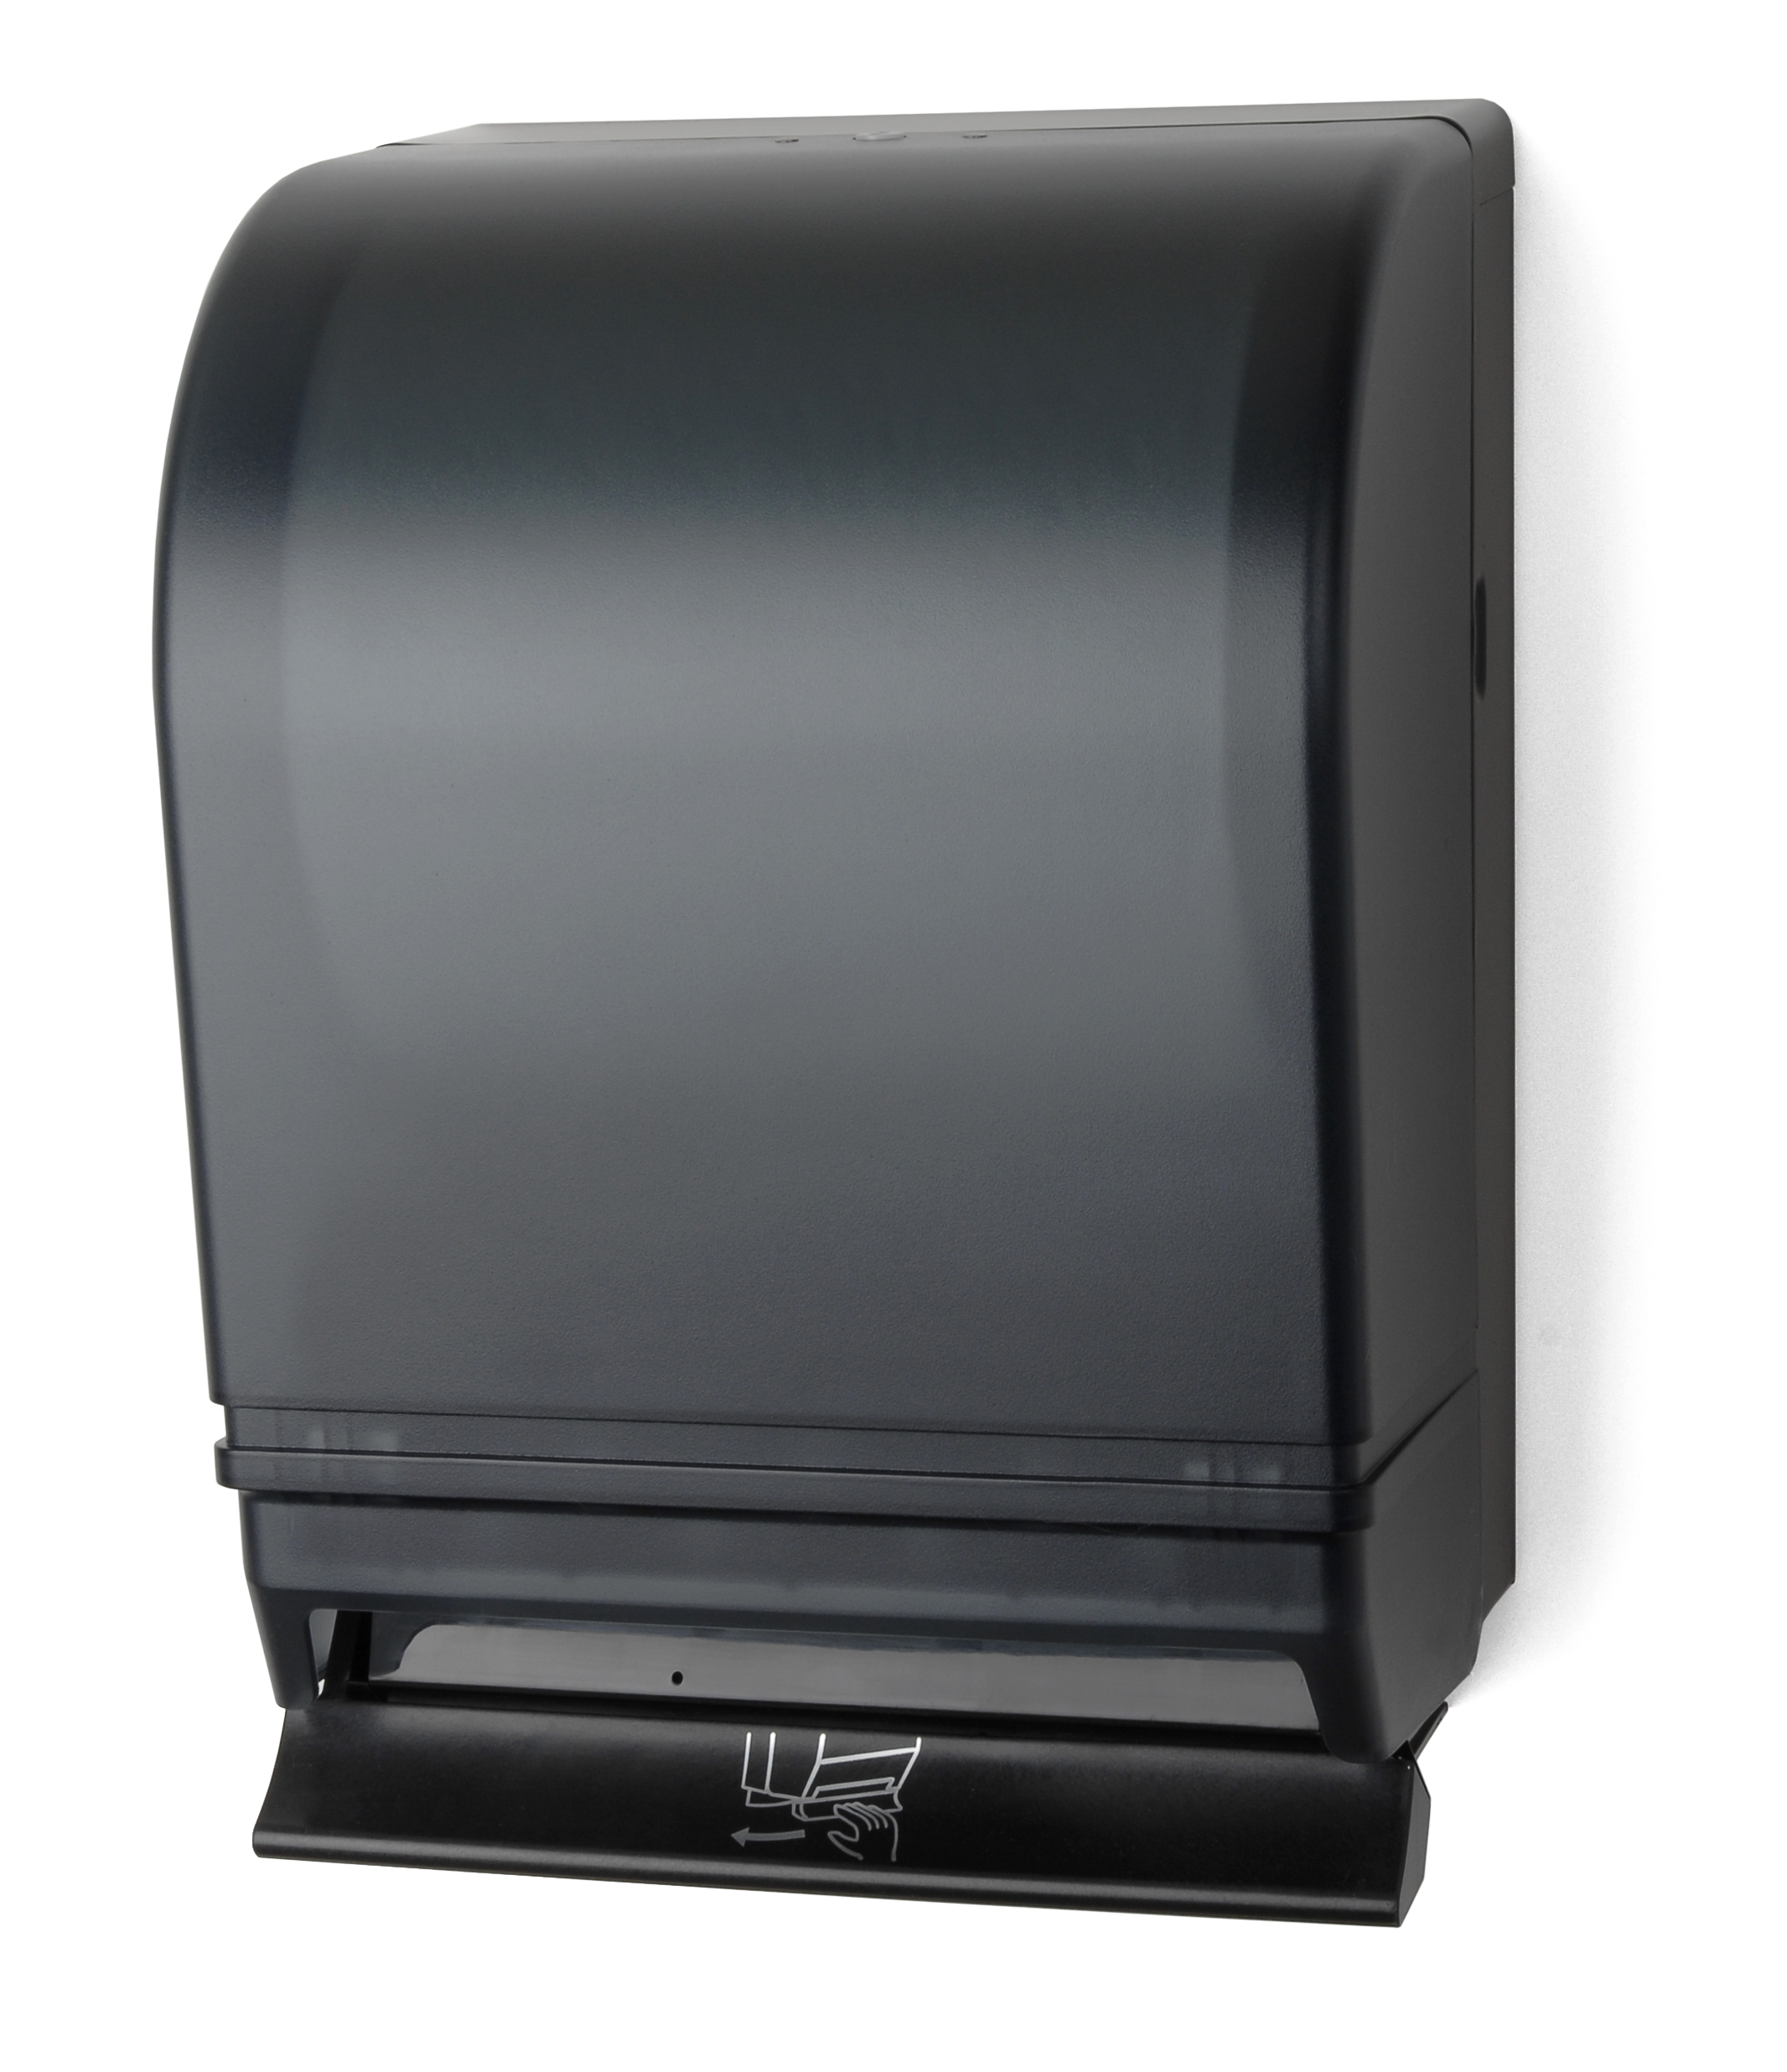 Auto-Transfer Push Bar Roll Towel Dispenser - Black Translucent